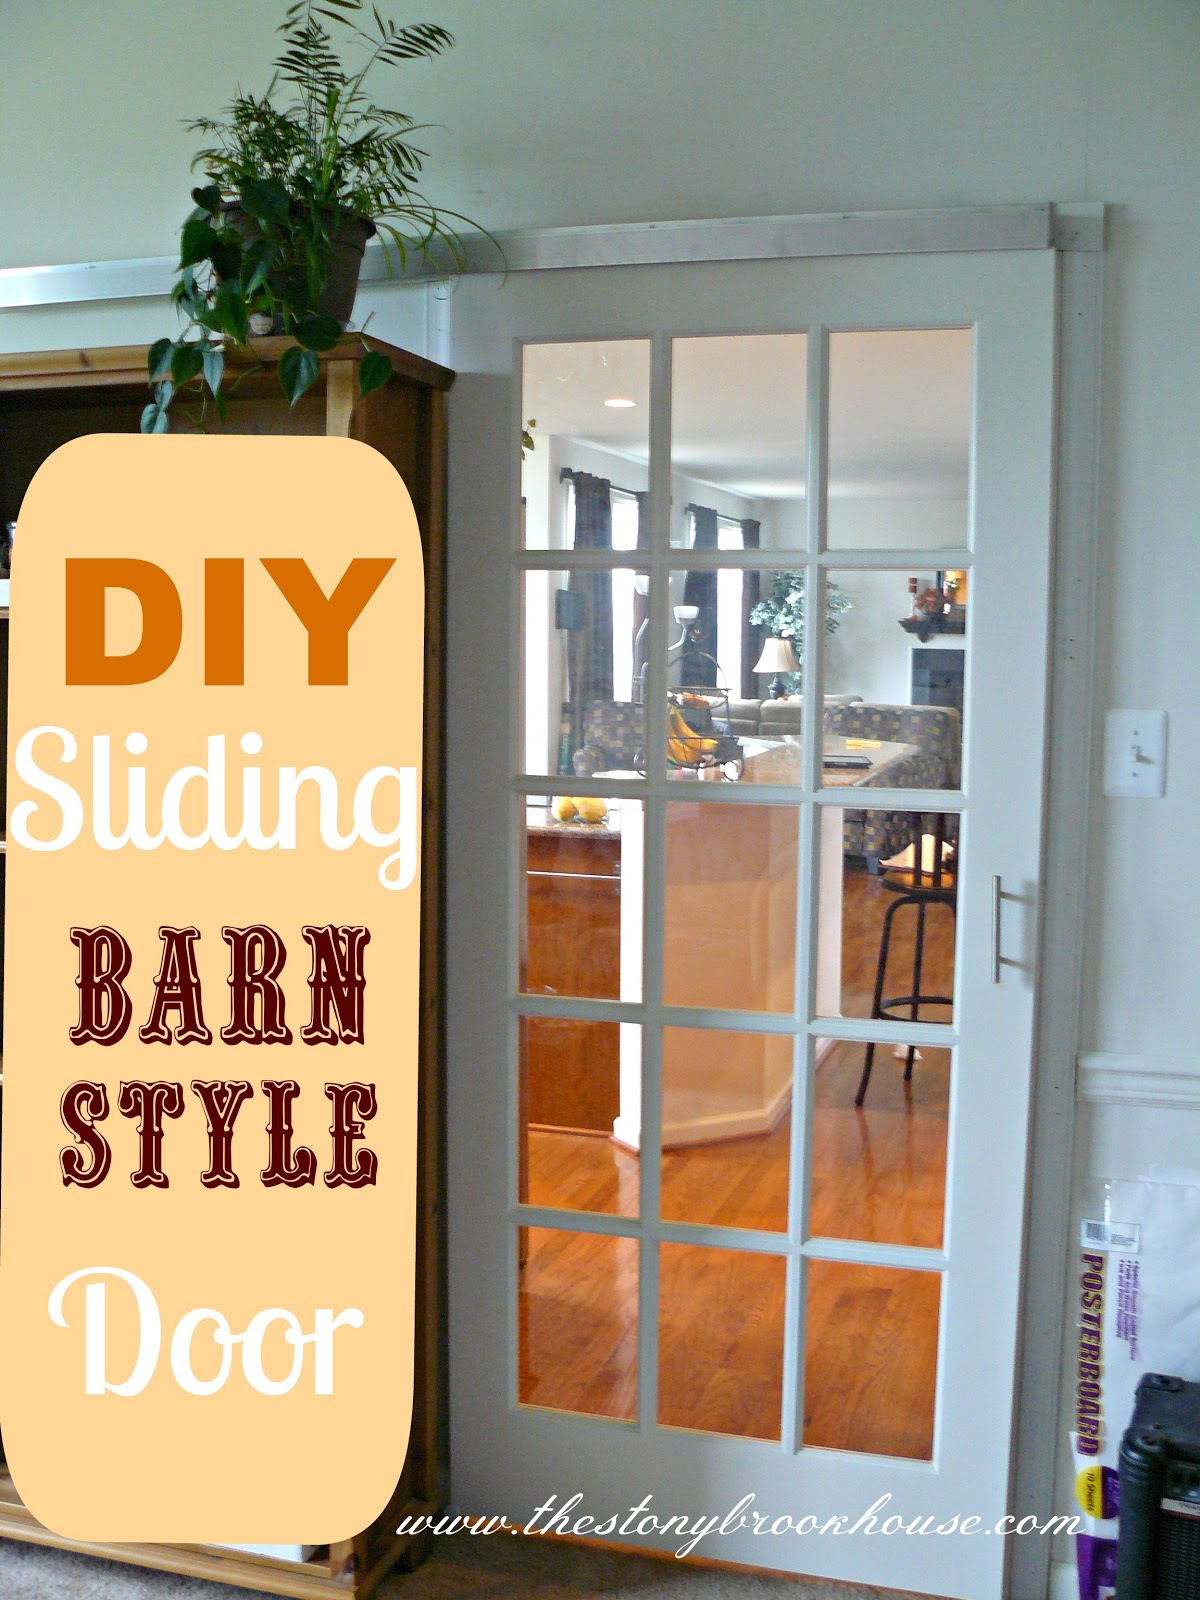 DIY Sliding Barn Door 1200 x 1600